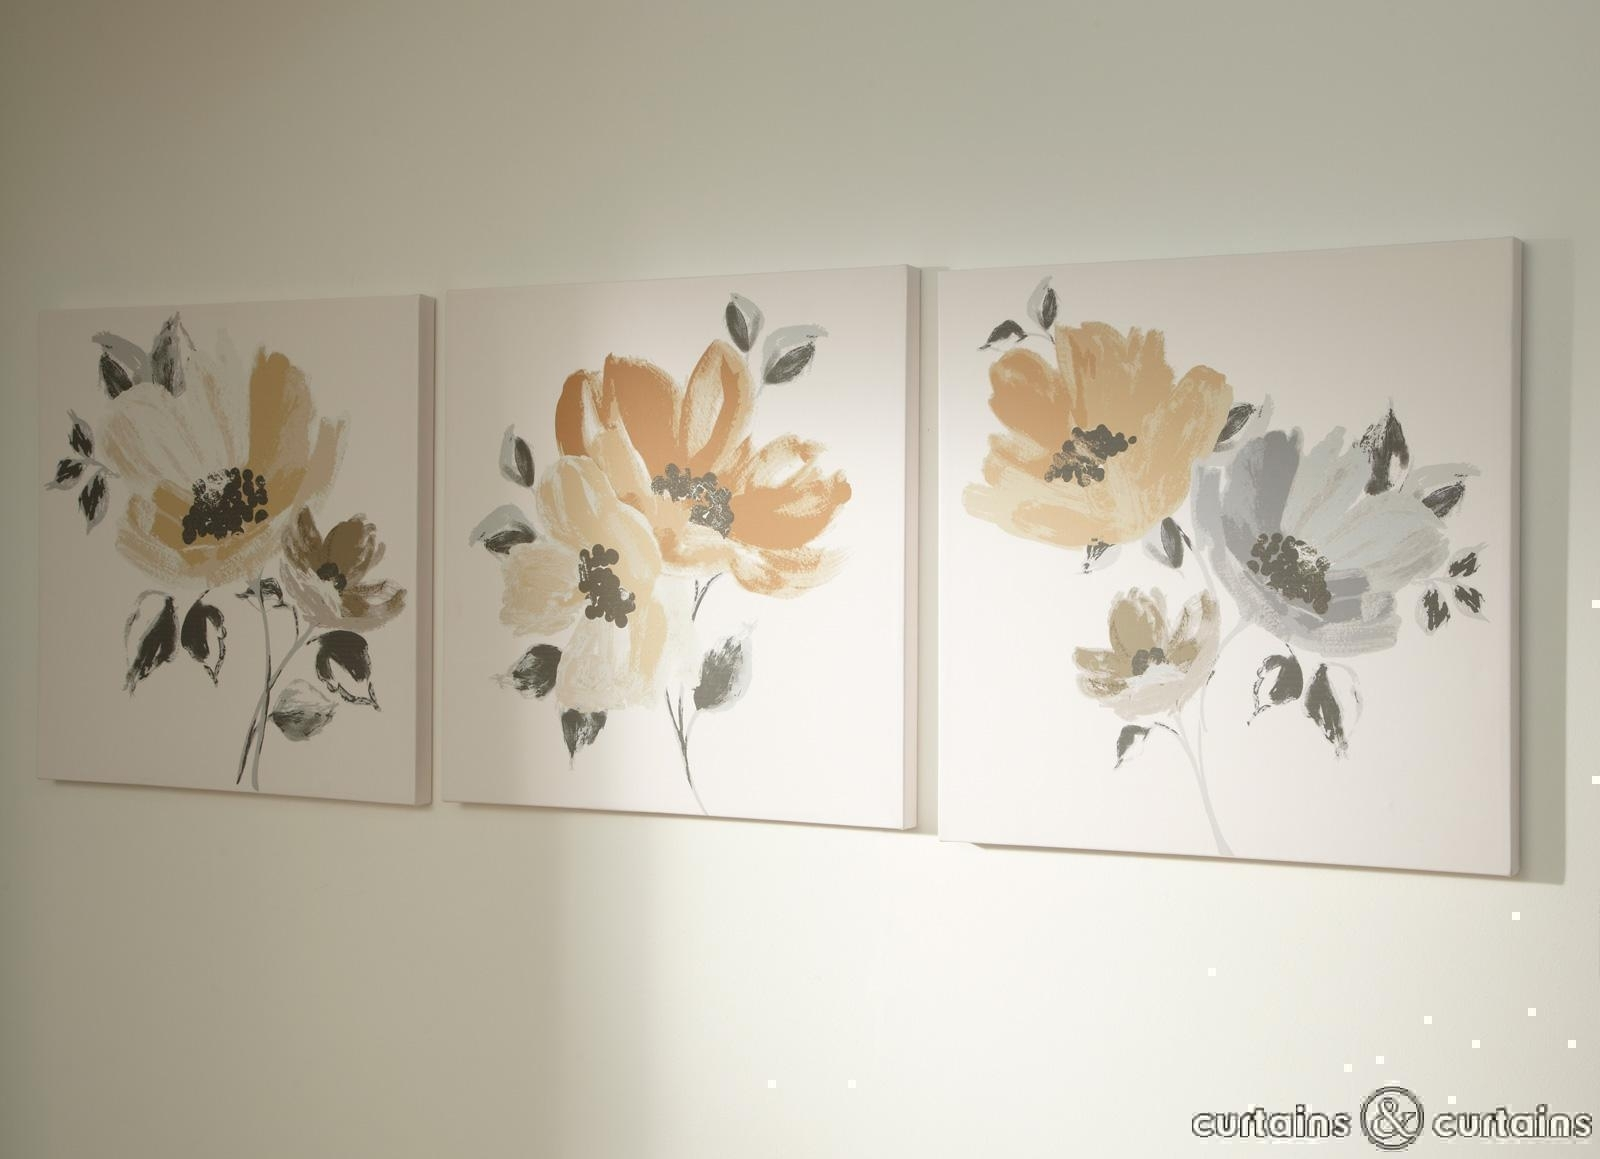 Wall Art: Top Ten Gallery Floral Canvas Wall Art Floral Posters Inside Newest Canvas Wall Art Of Flowers (View 5 of 15)